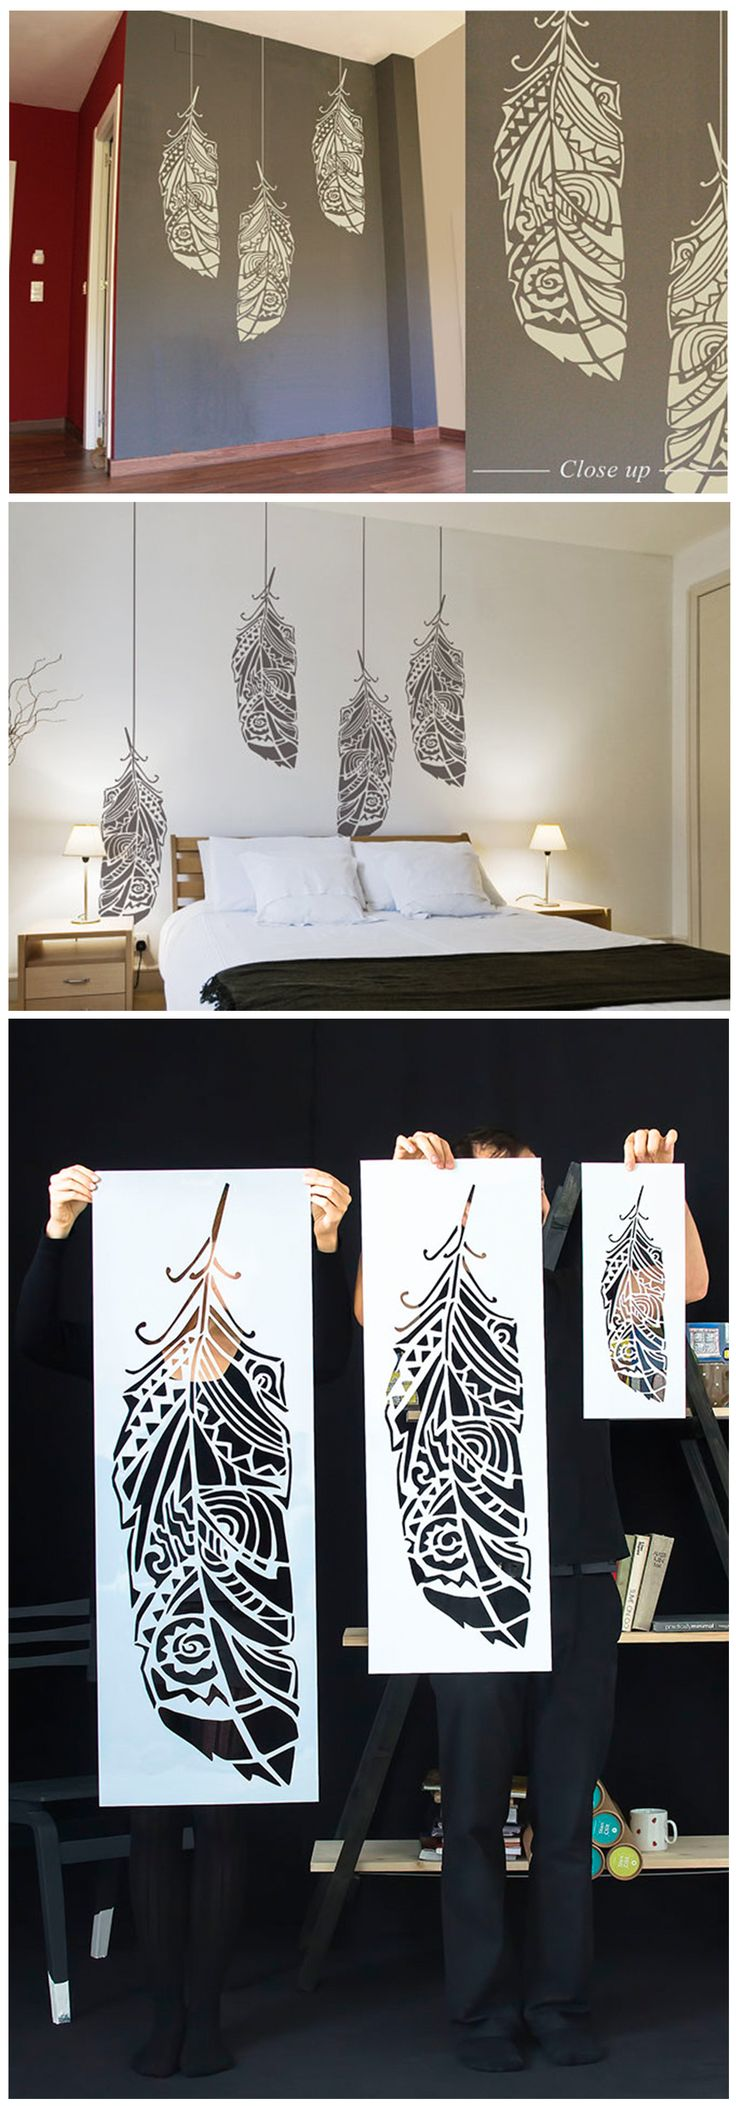 Feathers wall stencils / Scandinavian wall stencils. Now available in different sizes !